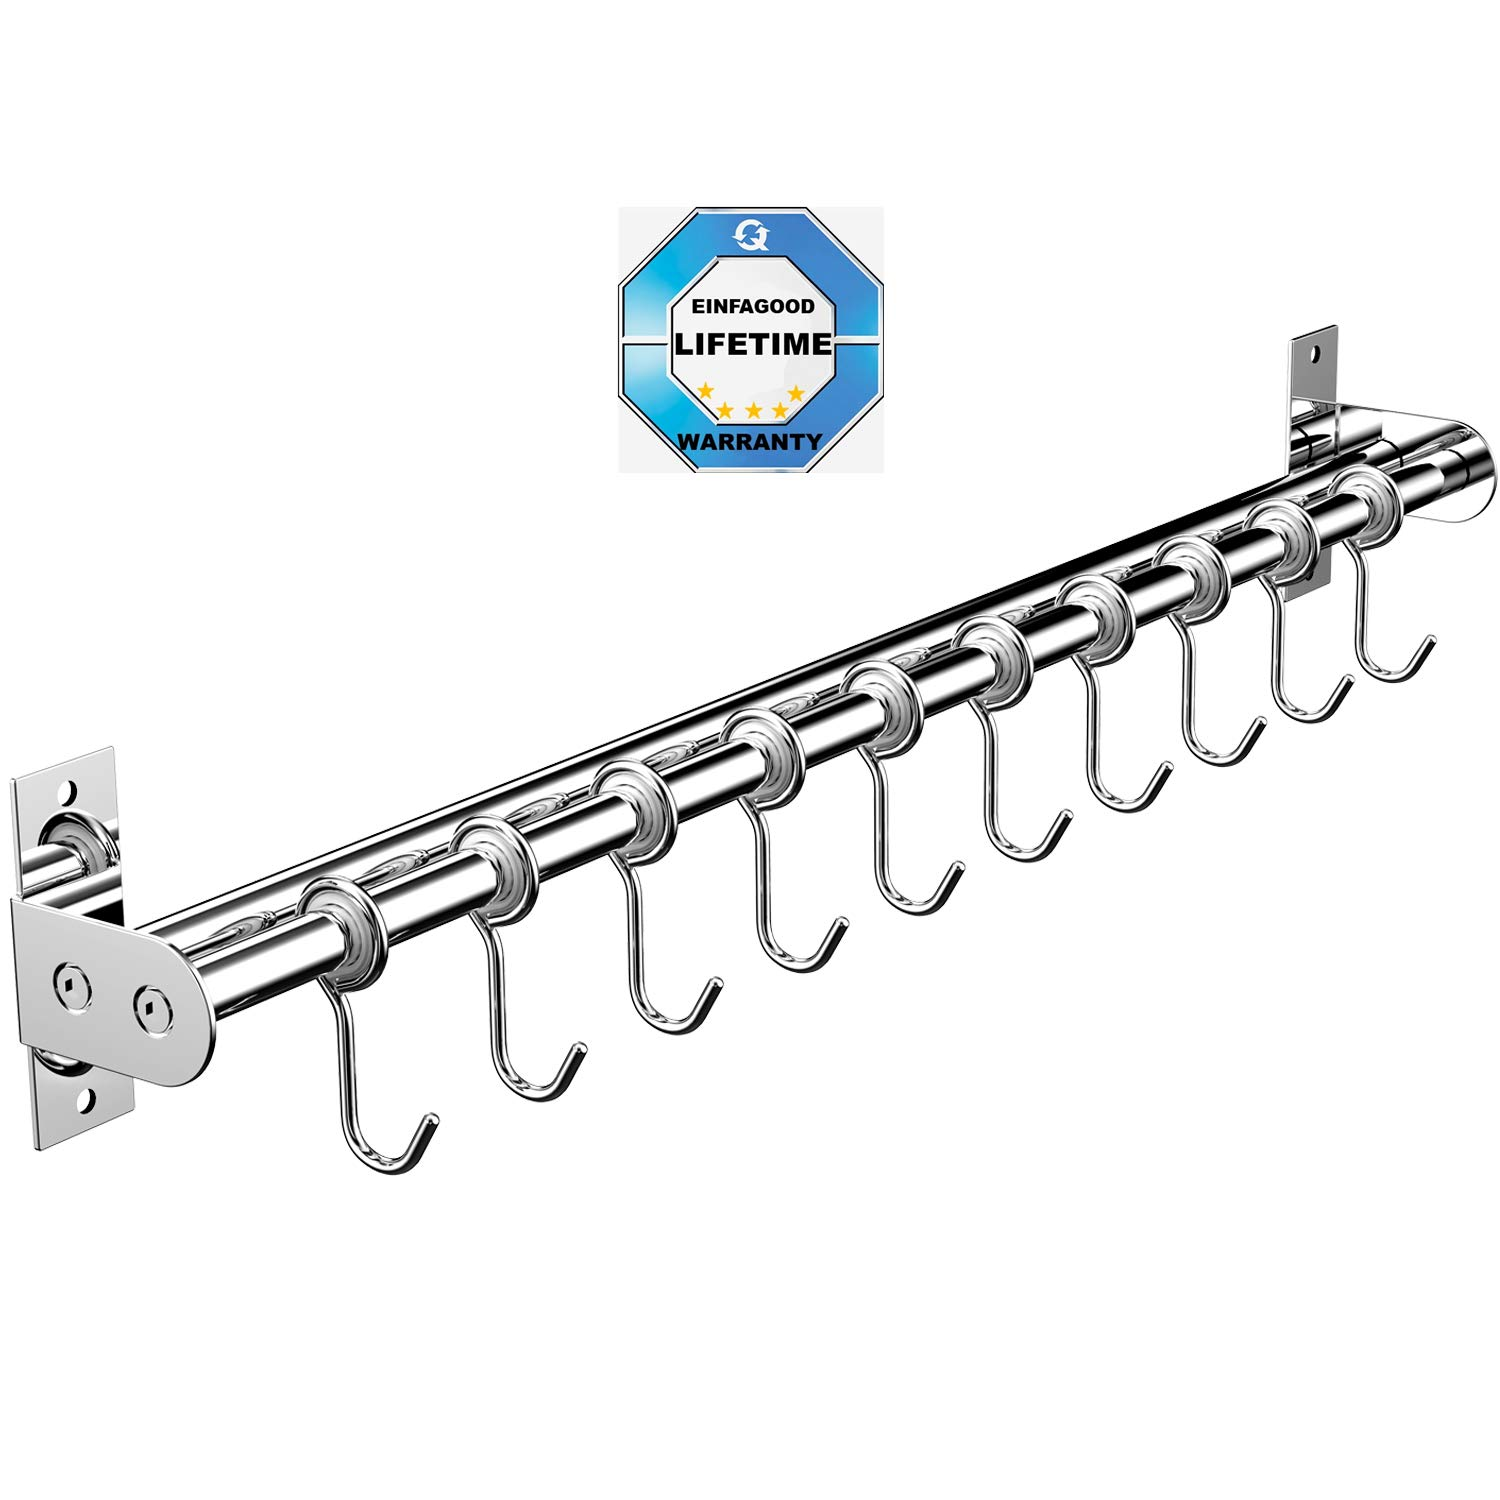 Amazon.com: EINFAGOOD - Perchero de pared con estante doble ...